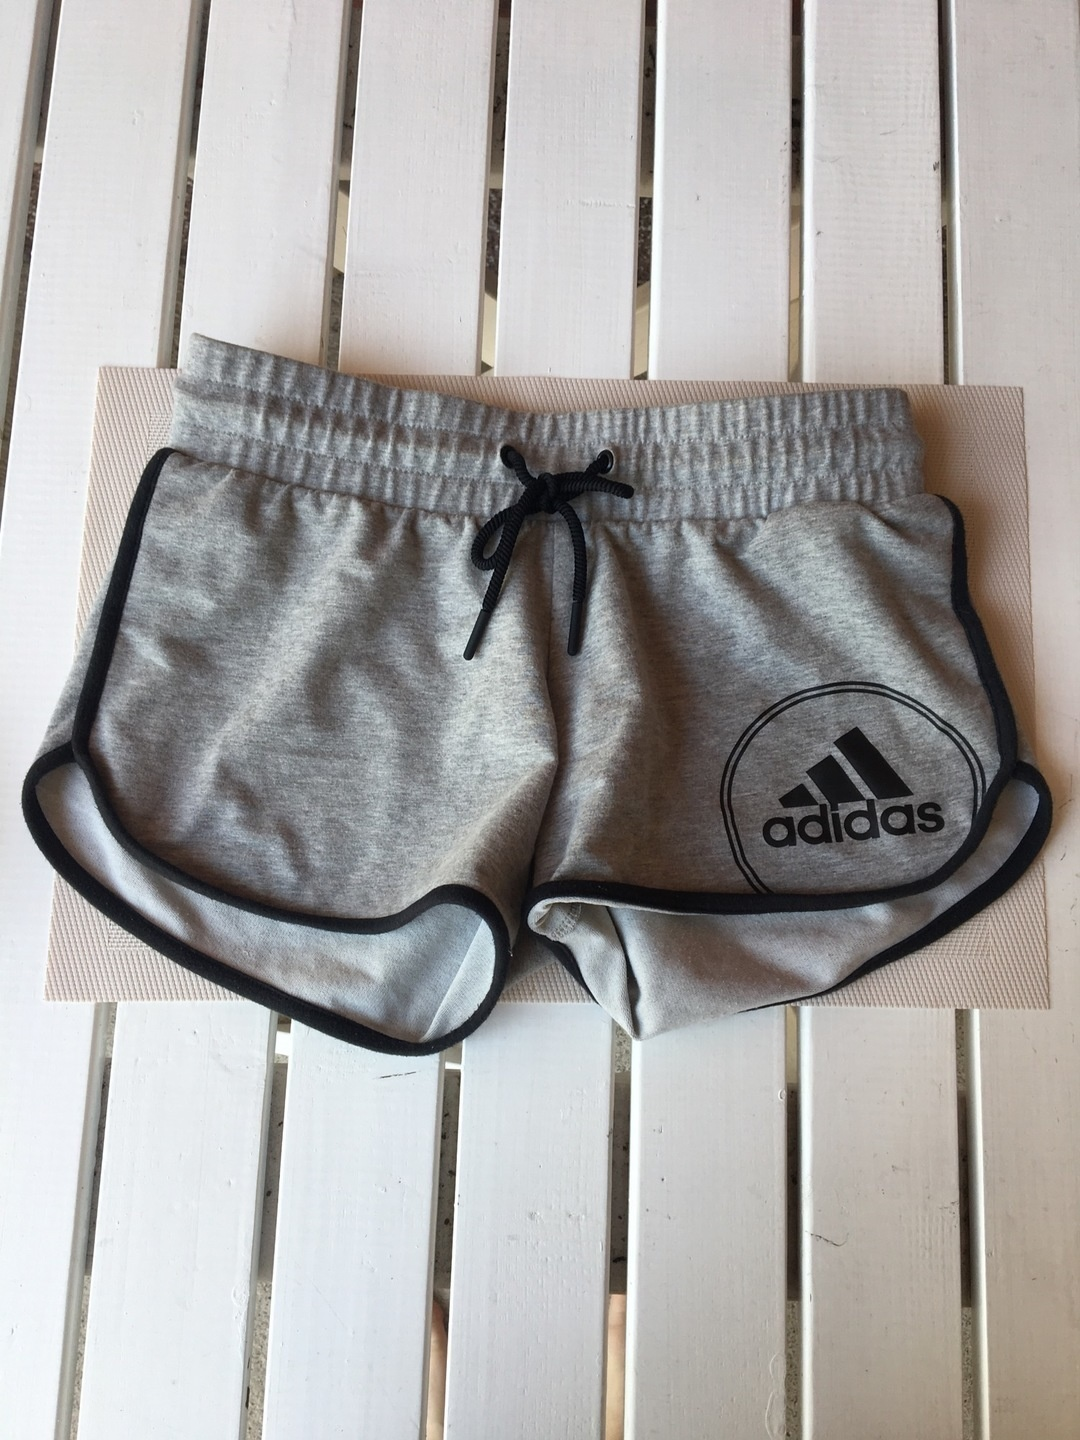 Women's shorts - ADIDAS photo 1